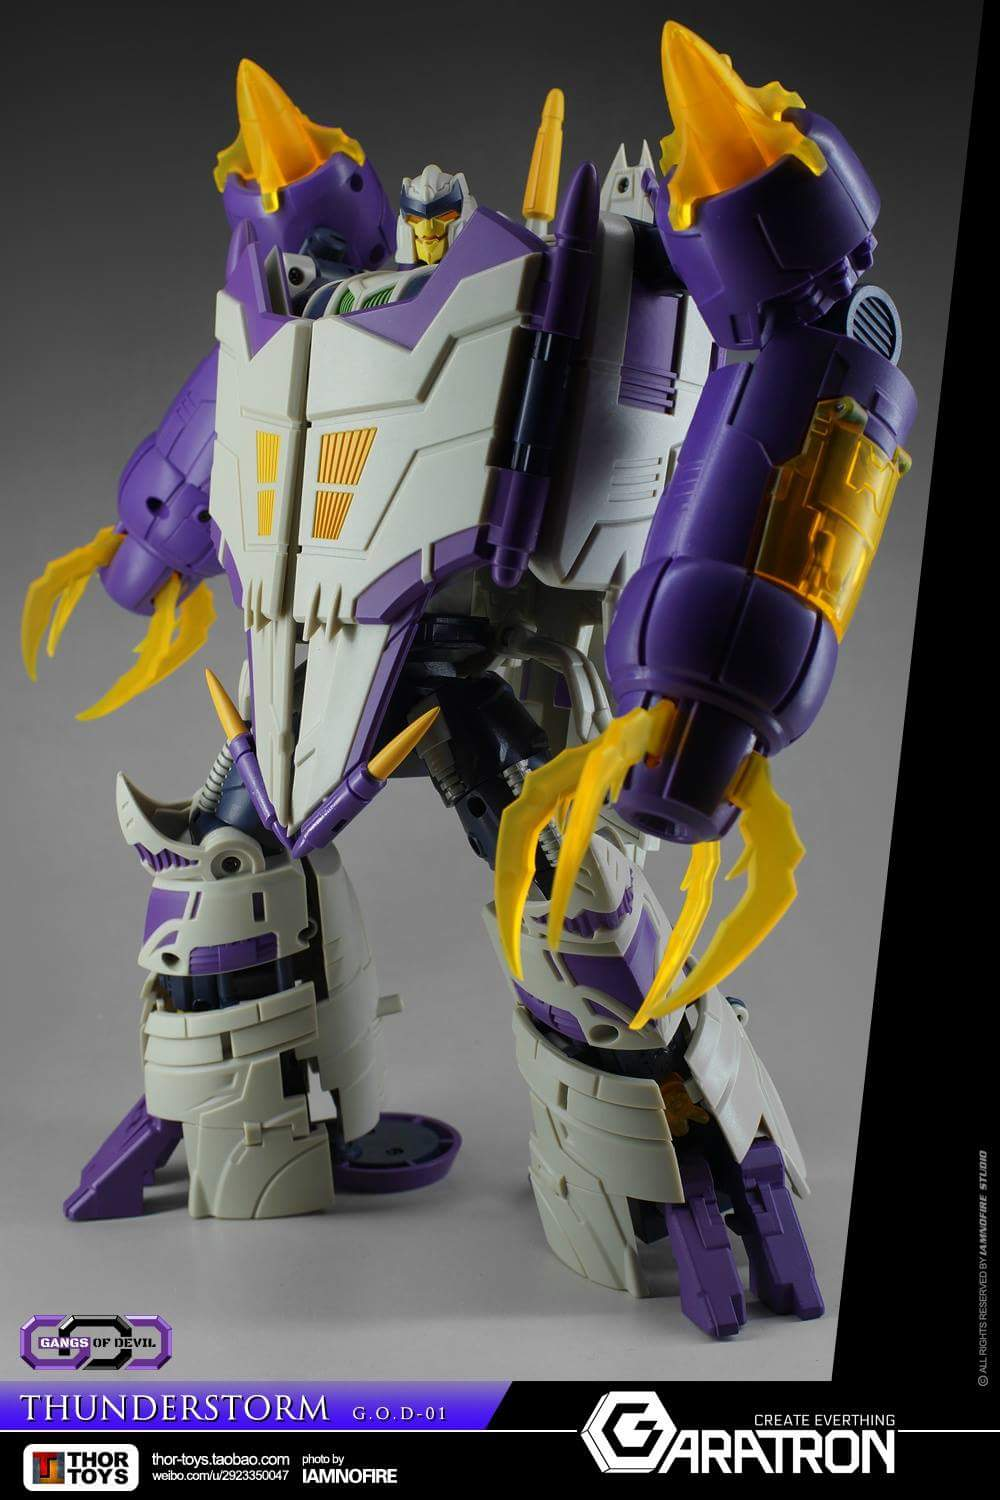 [Garatron] Produit Tiers - Gand of Devils G.O.D-01 Thunderstorm - aka Thunderwing des BD TF d'IDW - Page 2 LSYgpCbq